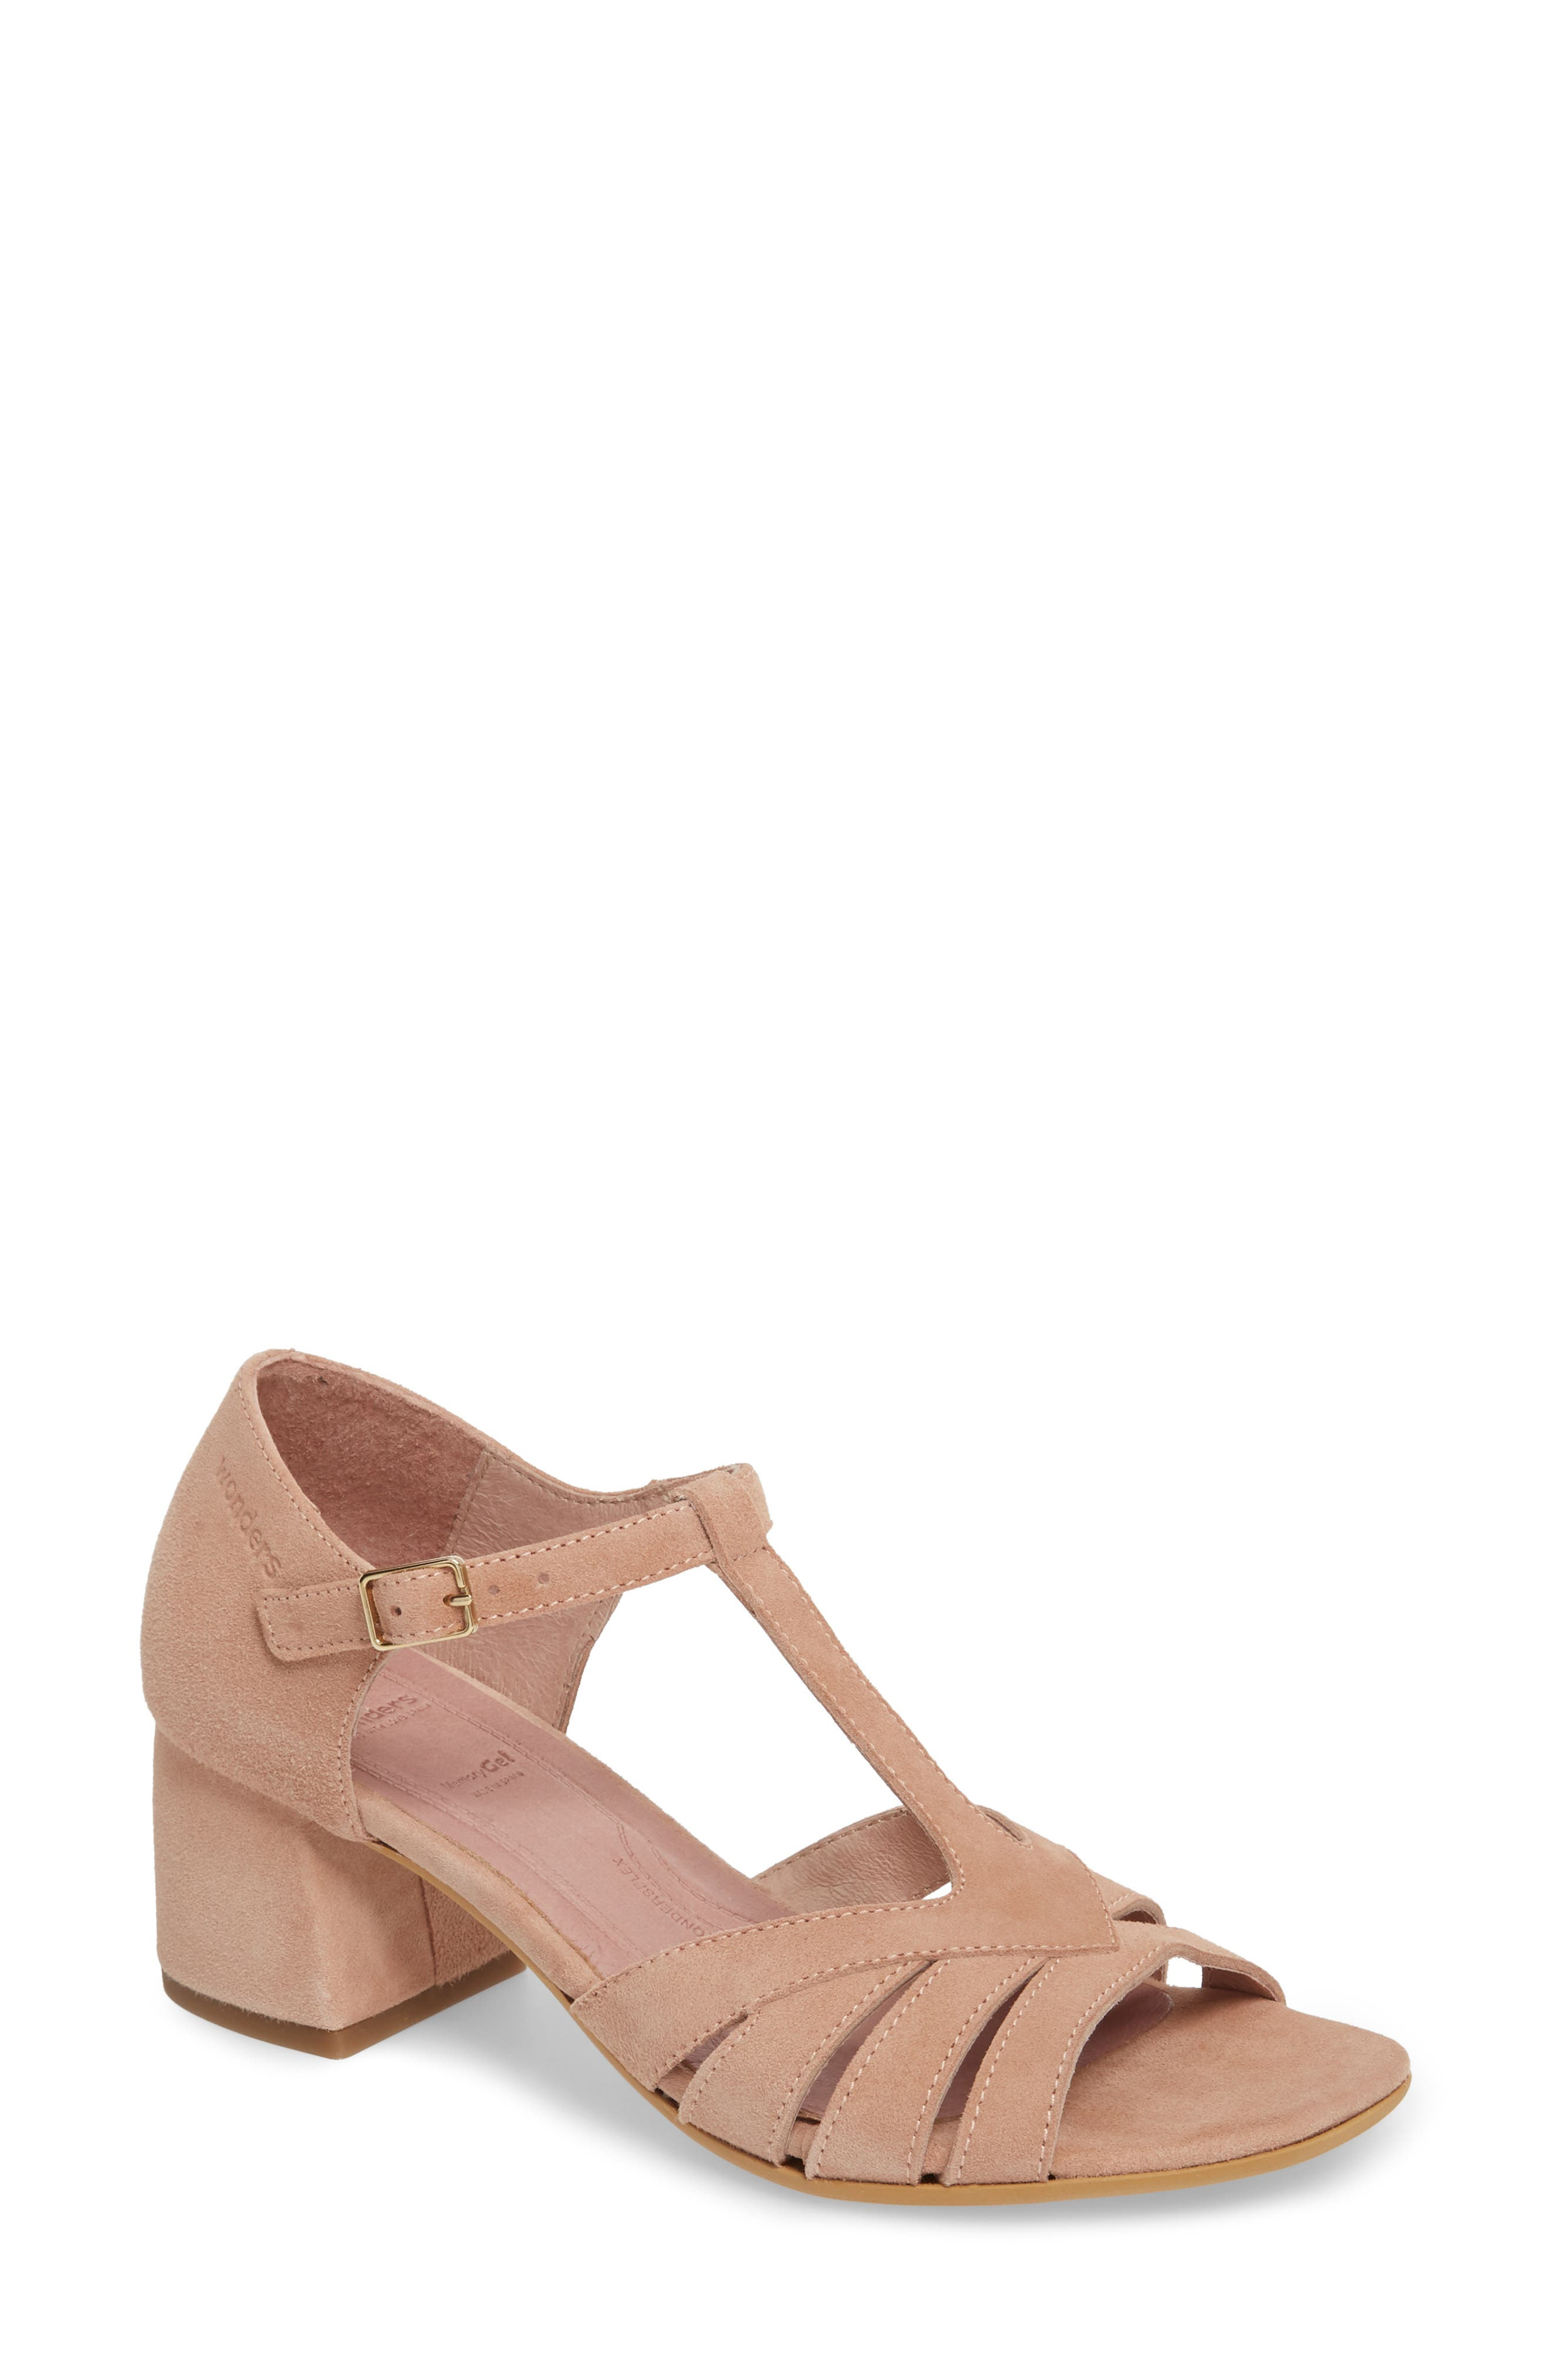 Wonders Block Heel Sandal (Women)